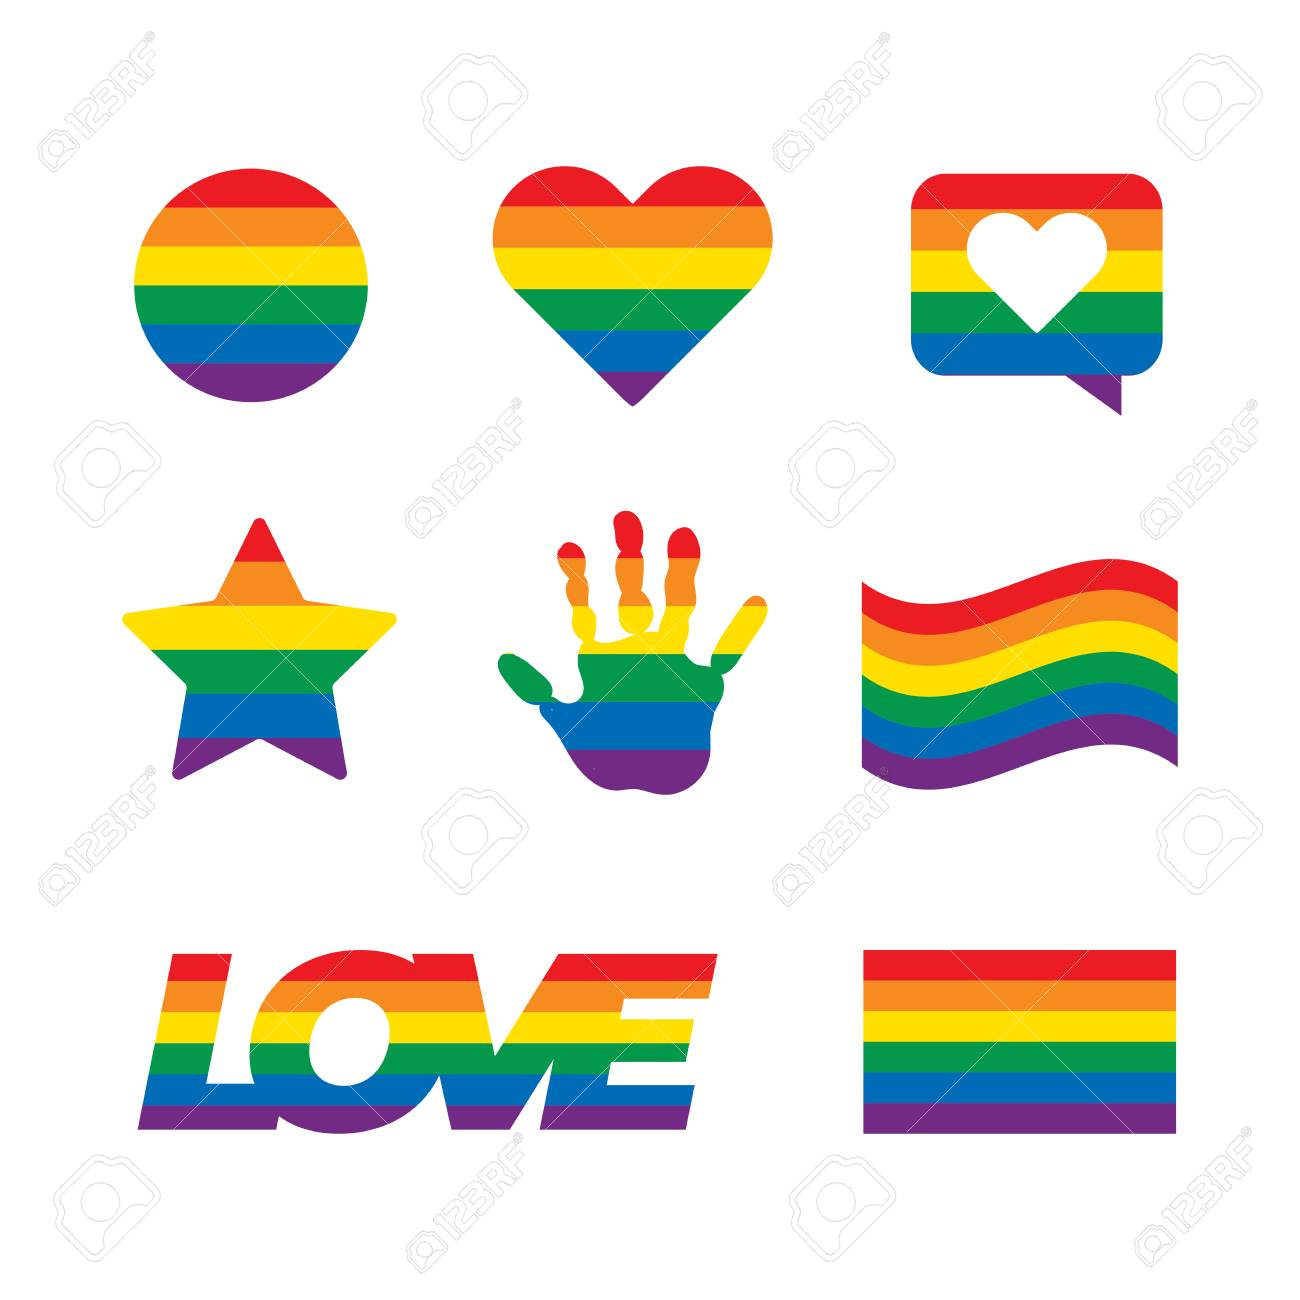 LGBT related symbols set in rainbow colors. Pride, freedom flags, hearts. - 126250282